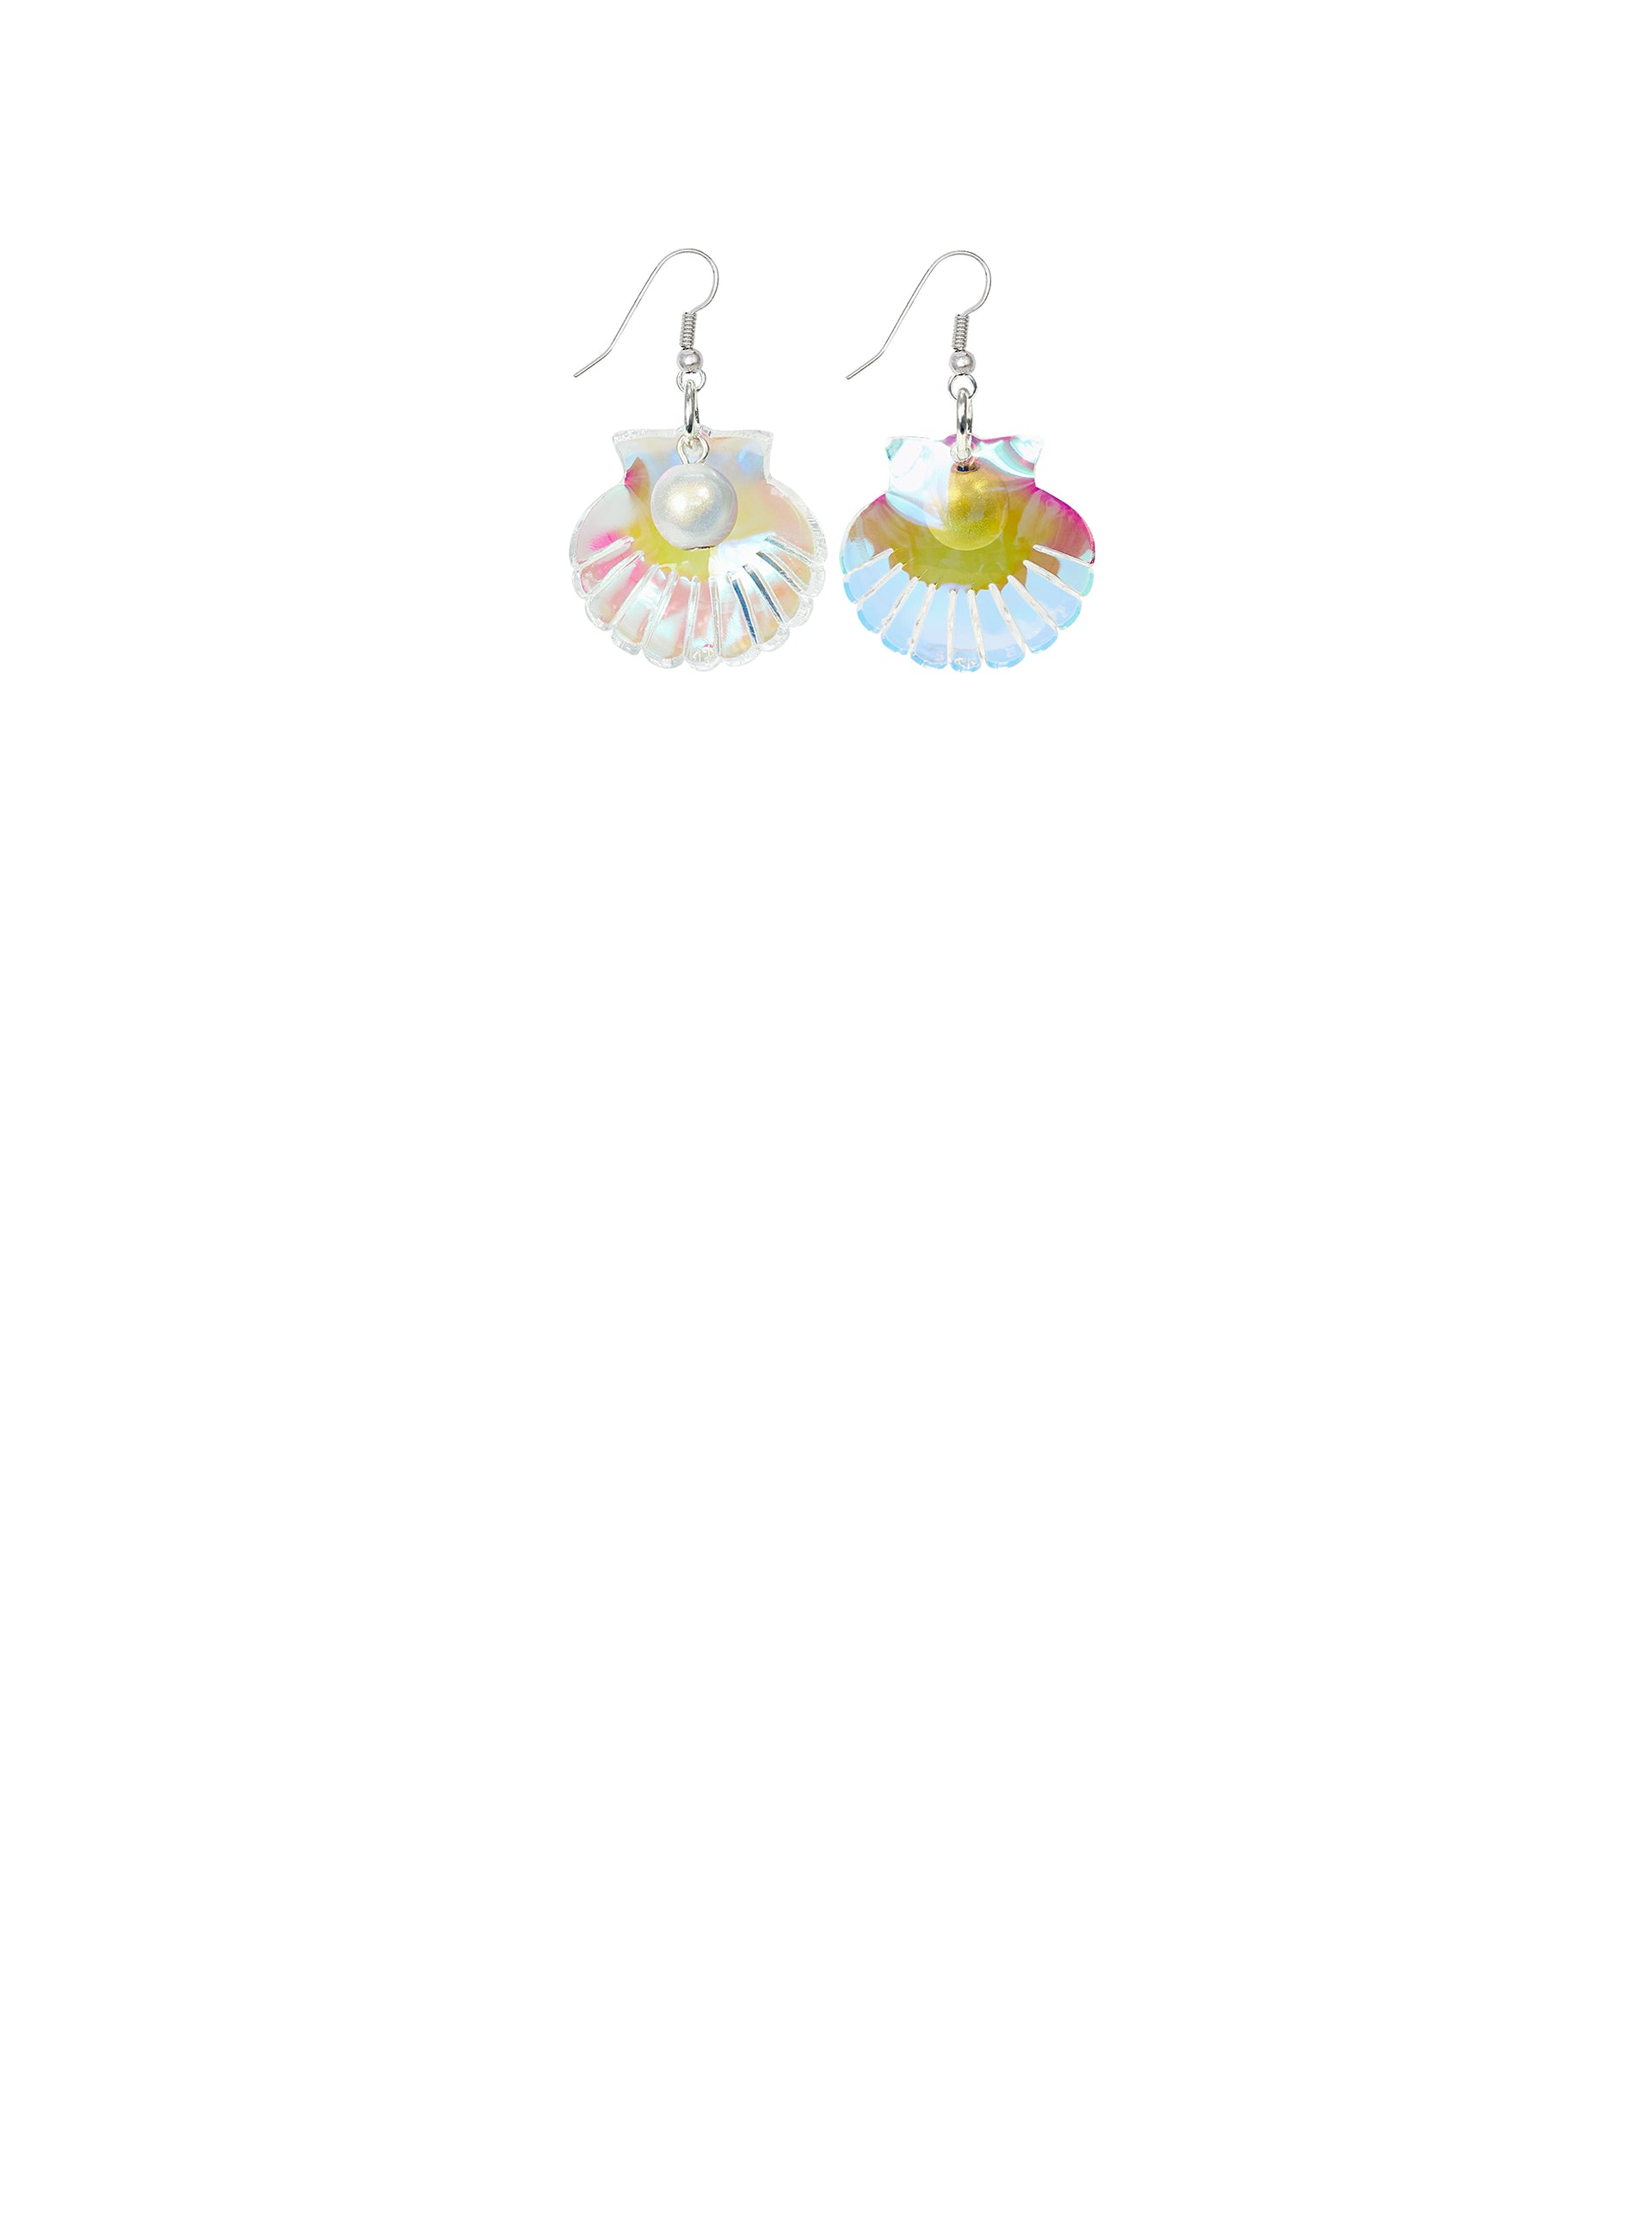 Scallop Shells Earrings